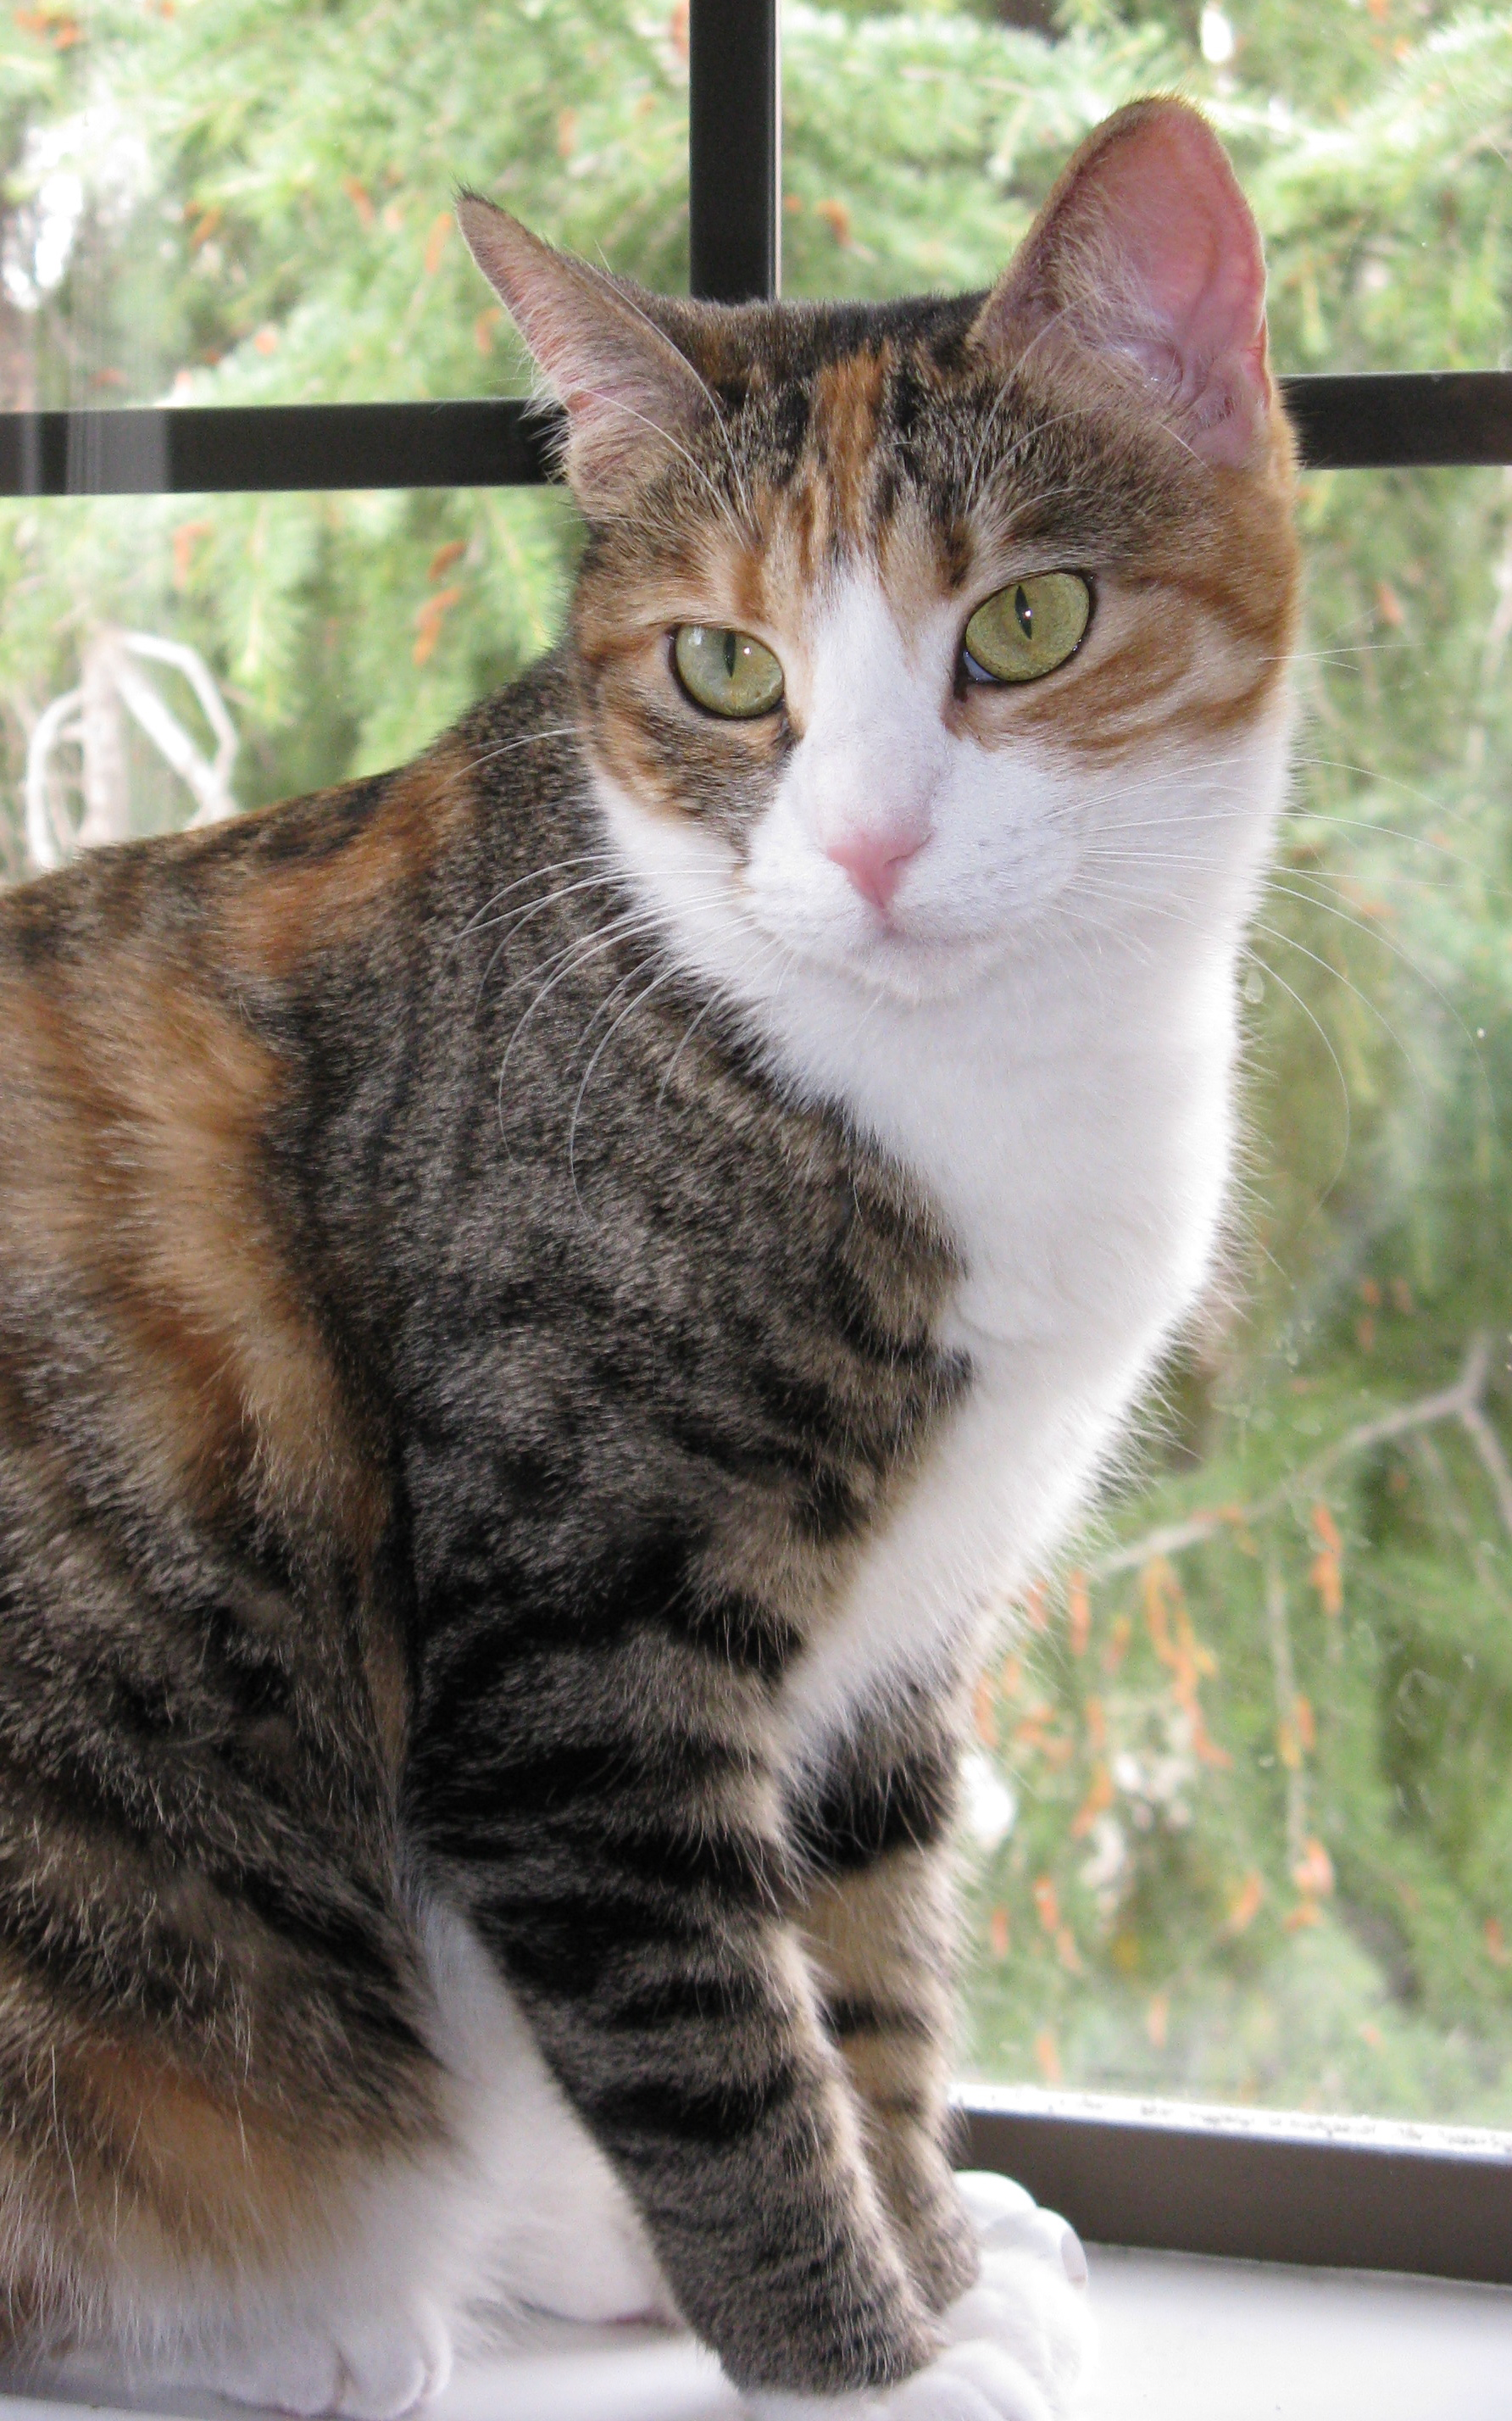 Mixed Breed Calico & Tortoiseshell Cat Picture 3351